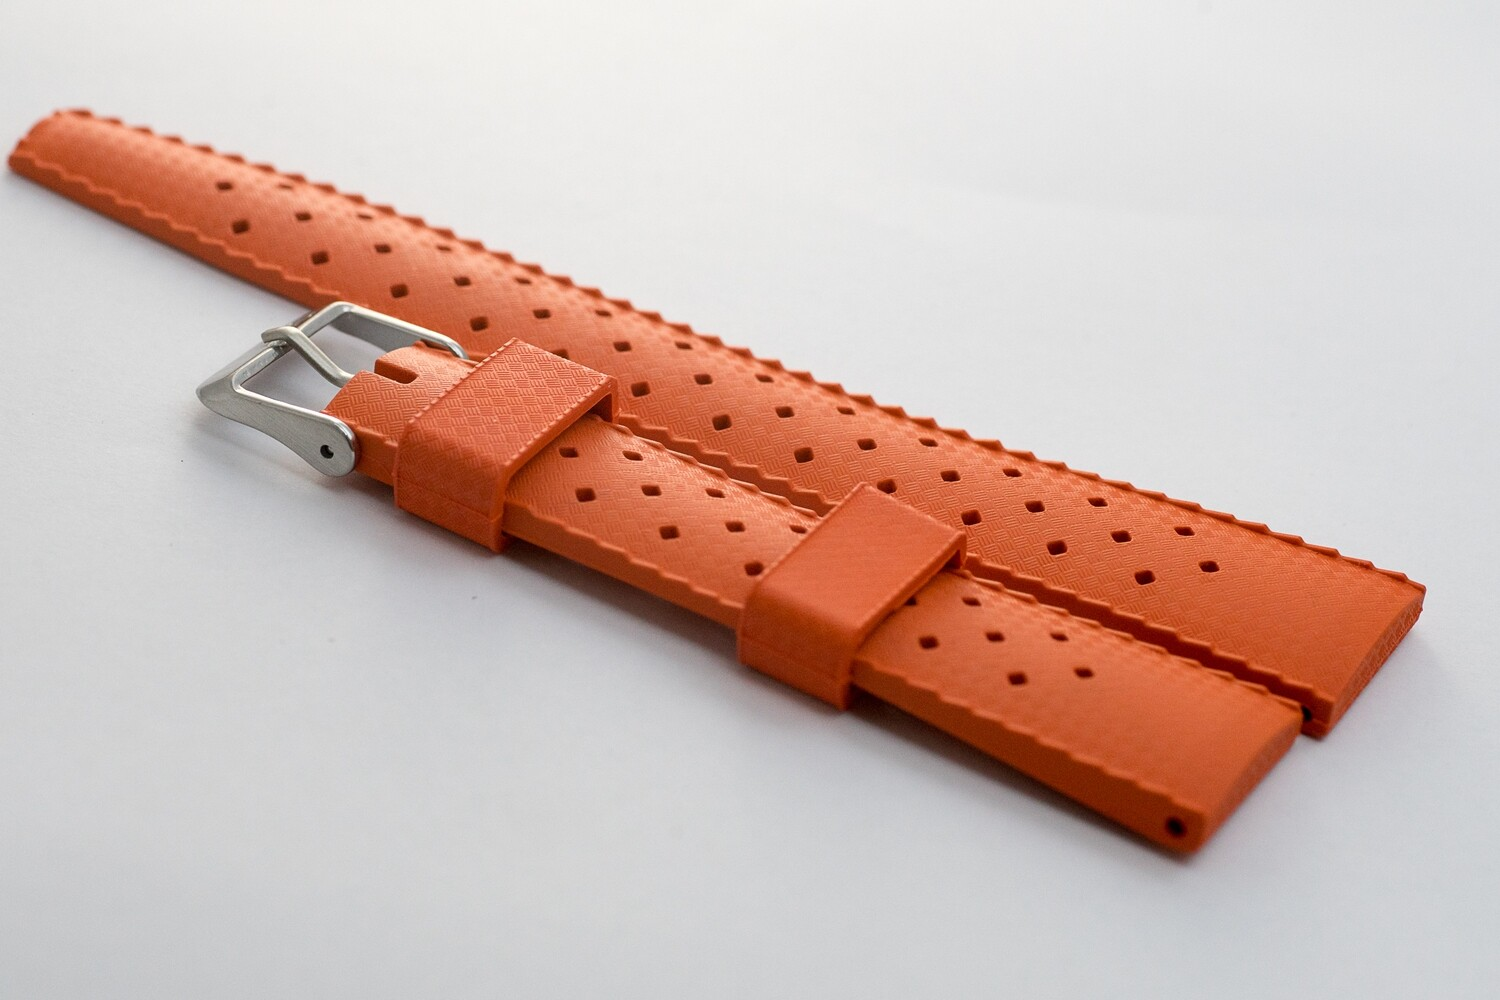 Borealis Vulcanized Tropic Style Strap 20mm Boavista Orange - Best Offer in Market for Diver Watches